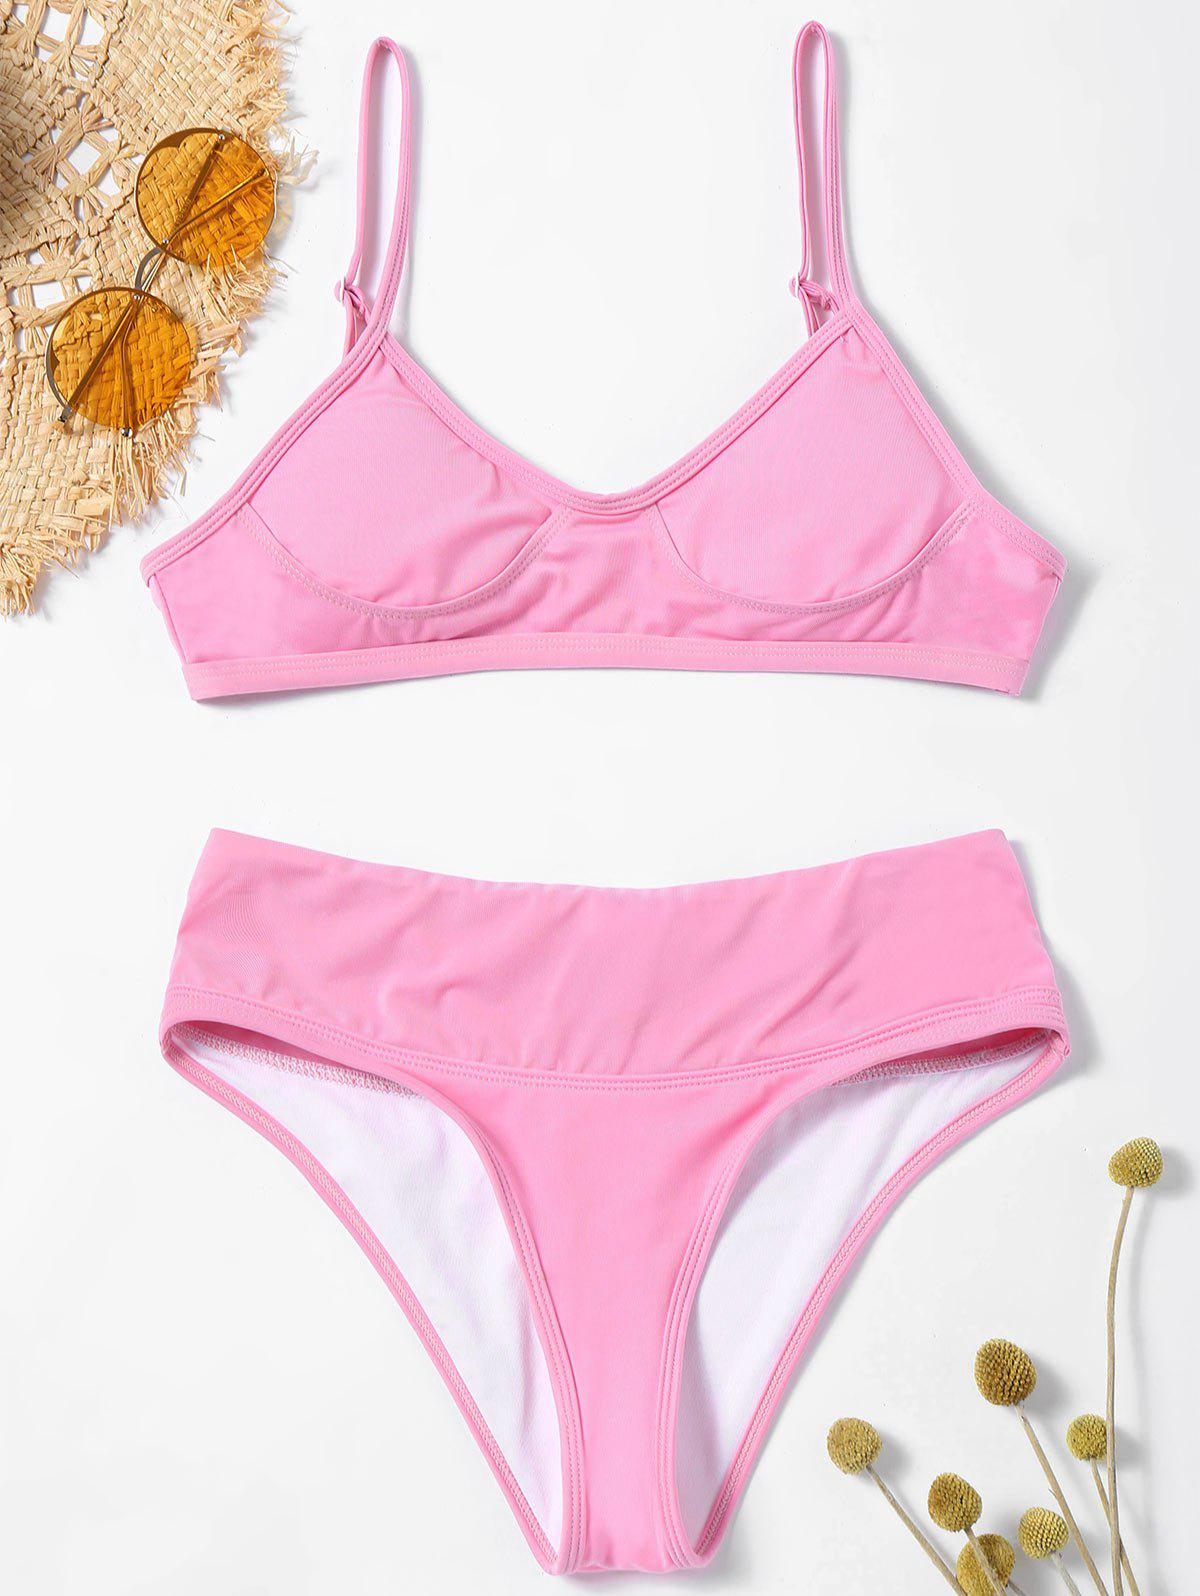 New Cami Strap High Leg Bikini Swimwear